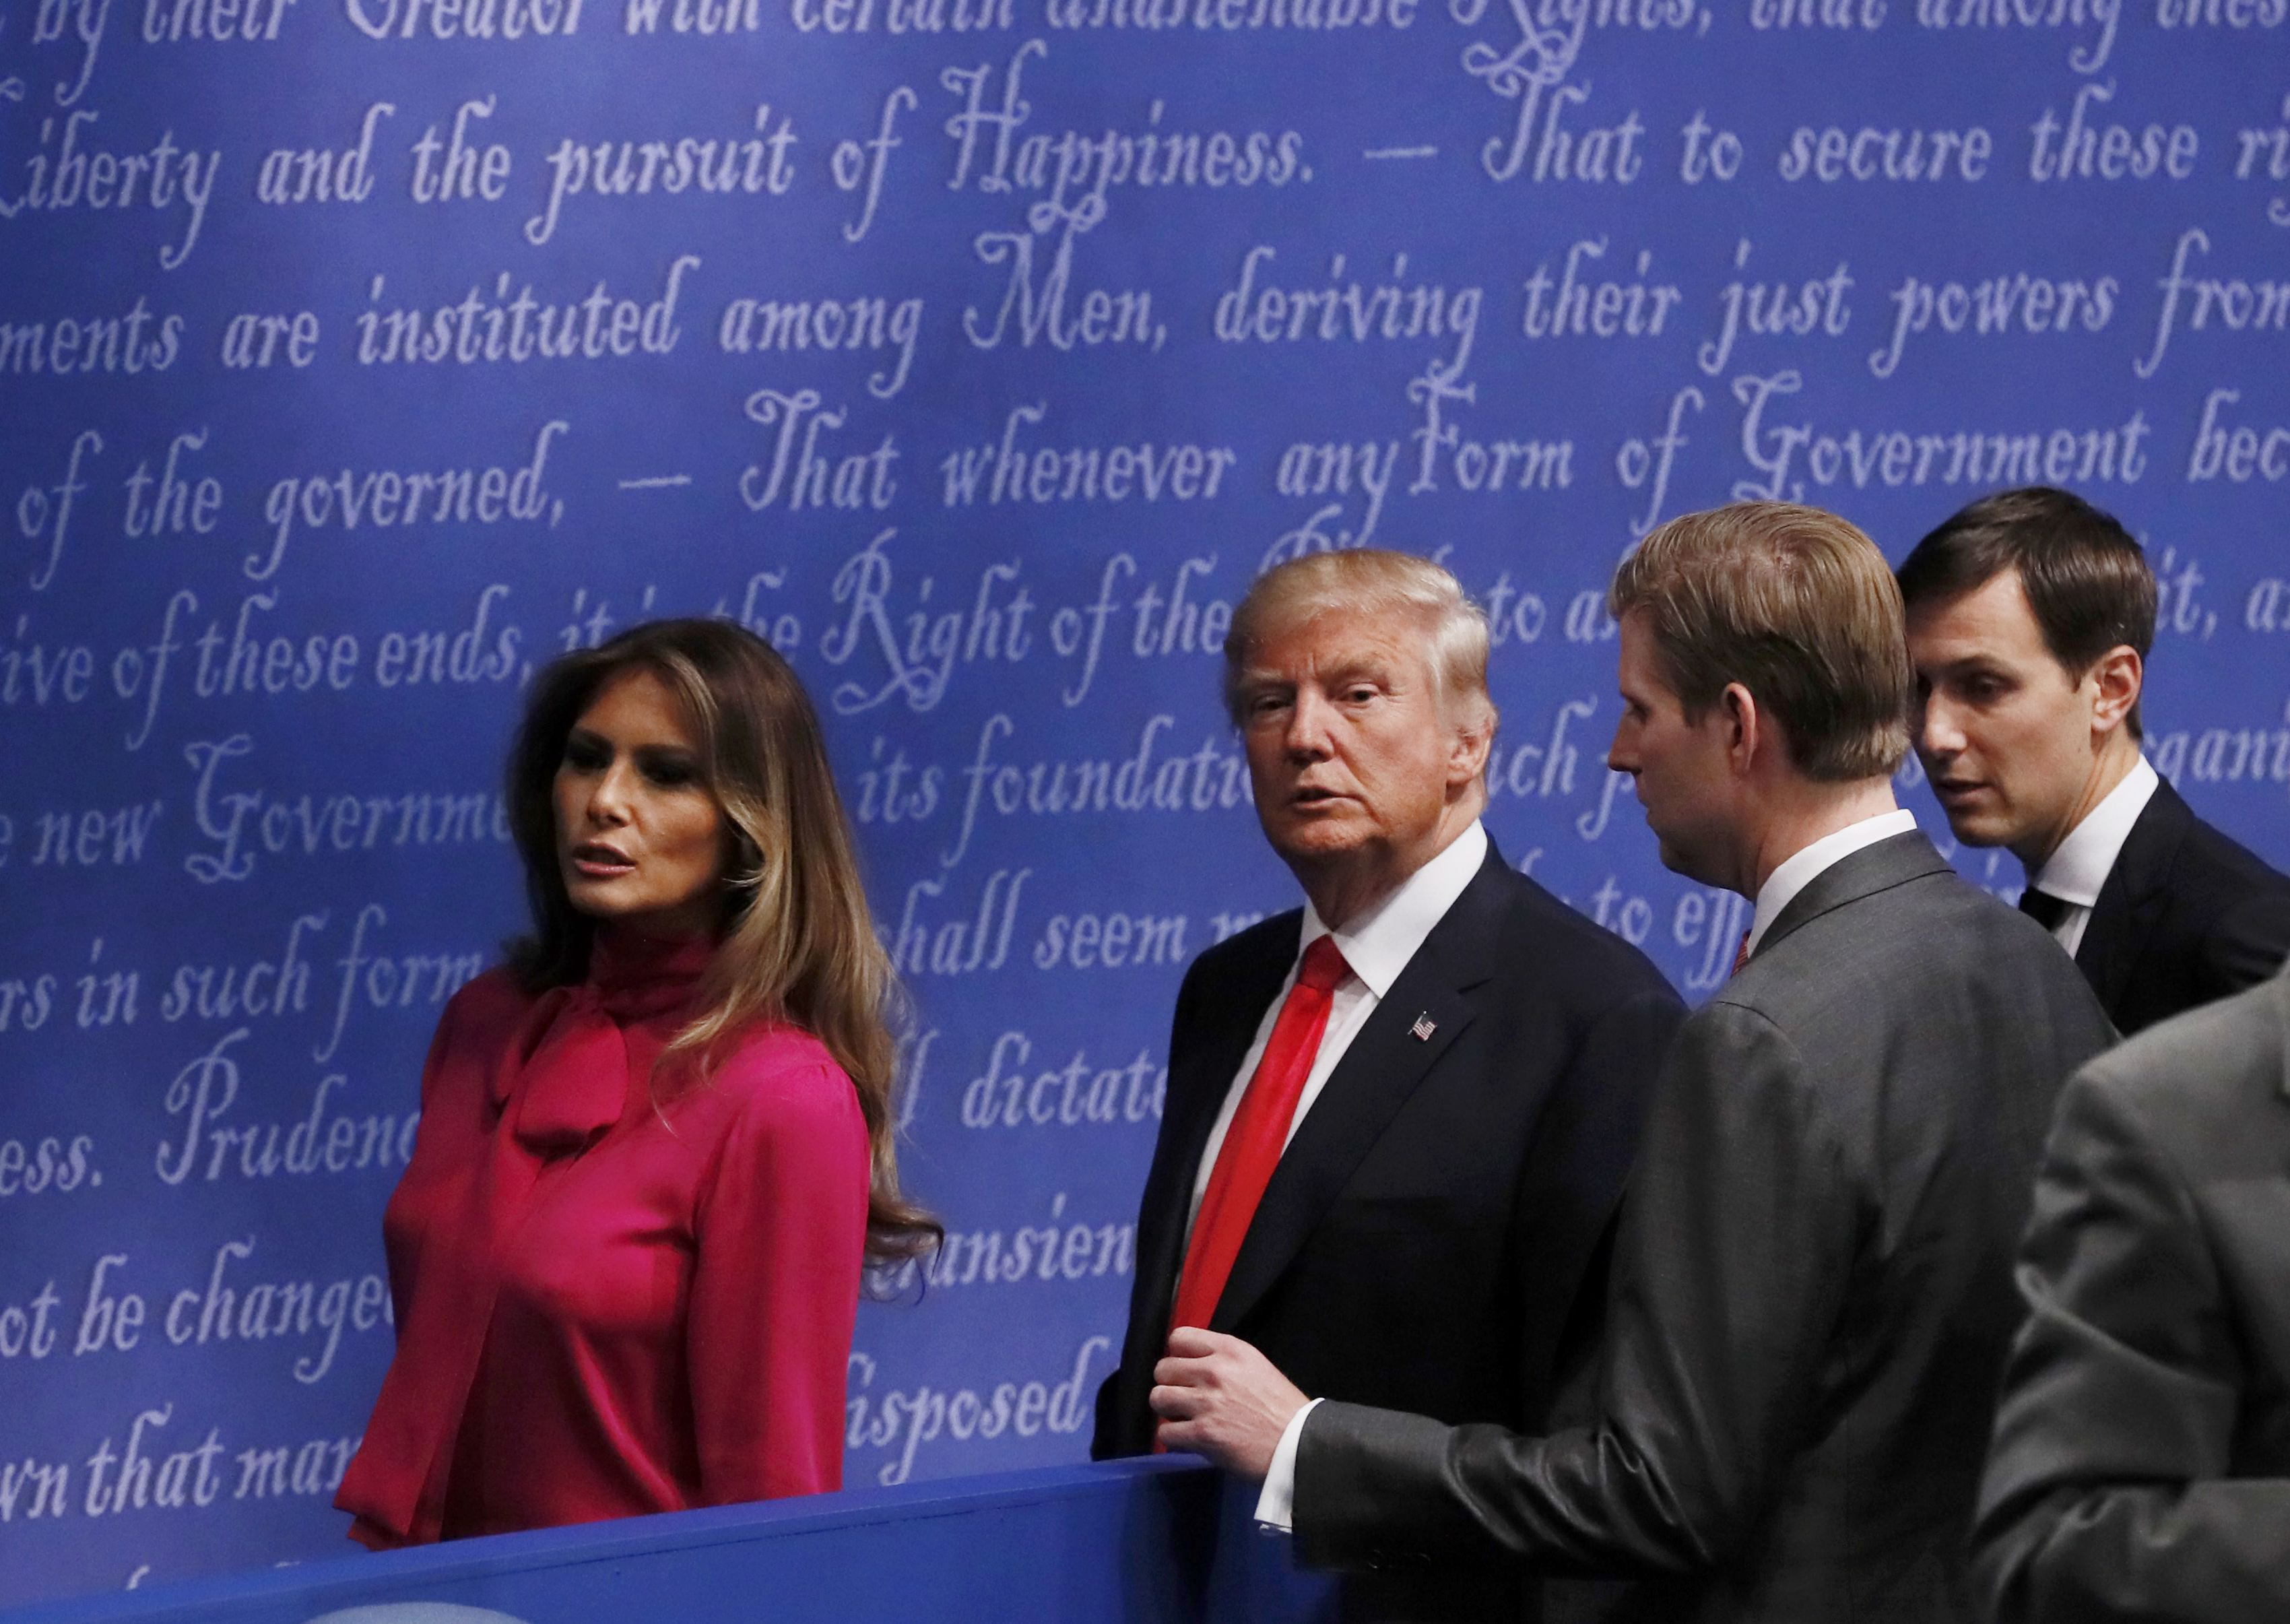 Republican U.S. presidential nominee Donald Trump leaves with Melania Trump and family members after the presidential town hall debate at Washington University in St. Louis, Missouri, U.S., October 9, 2016. REUTERS/Shannon Stapleton